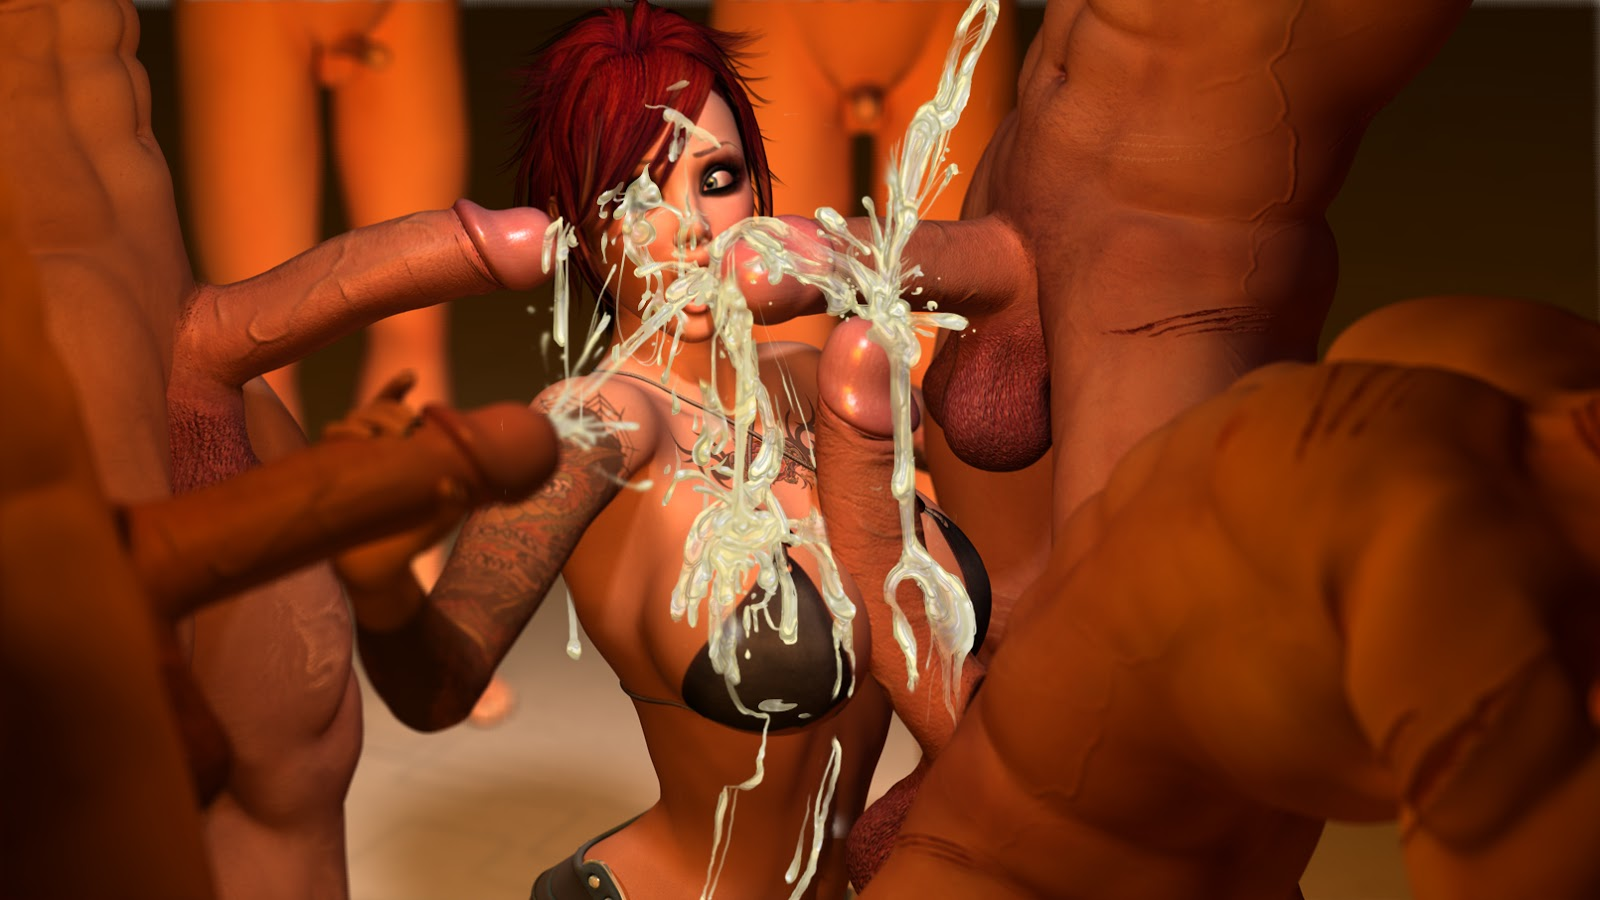 3d bukkake sex pictures xxx comics